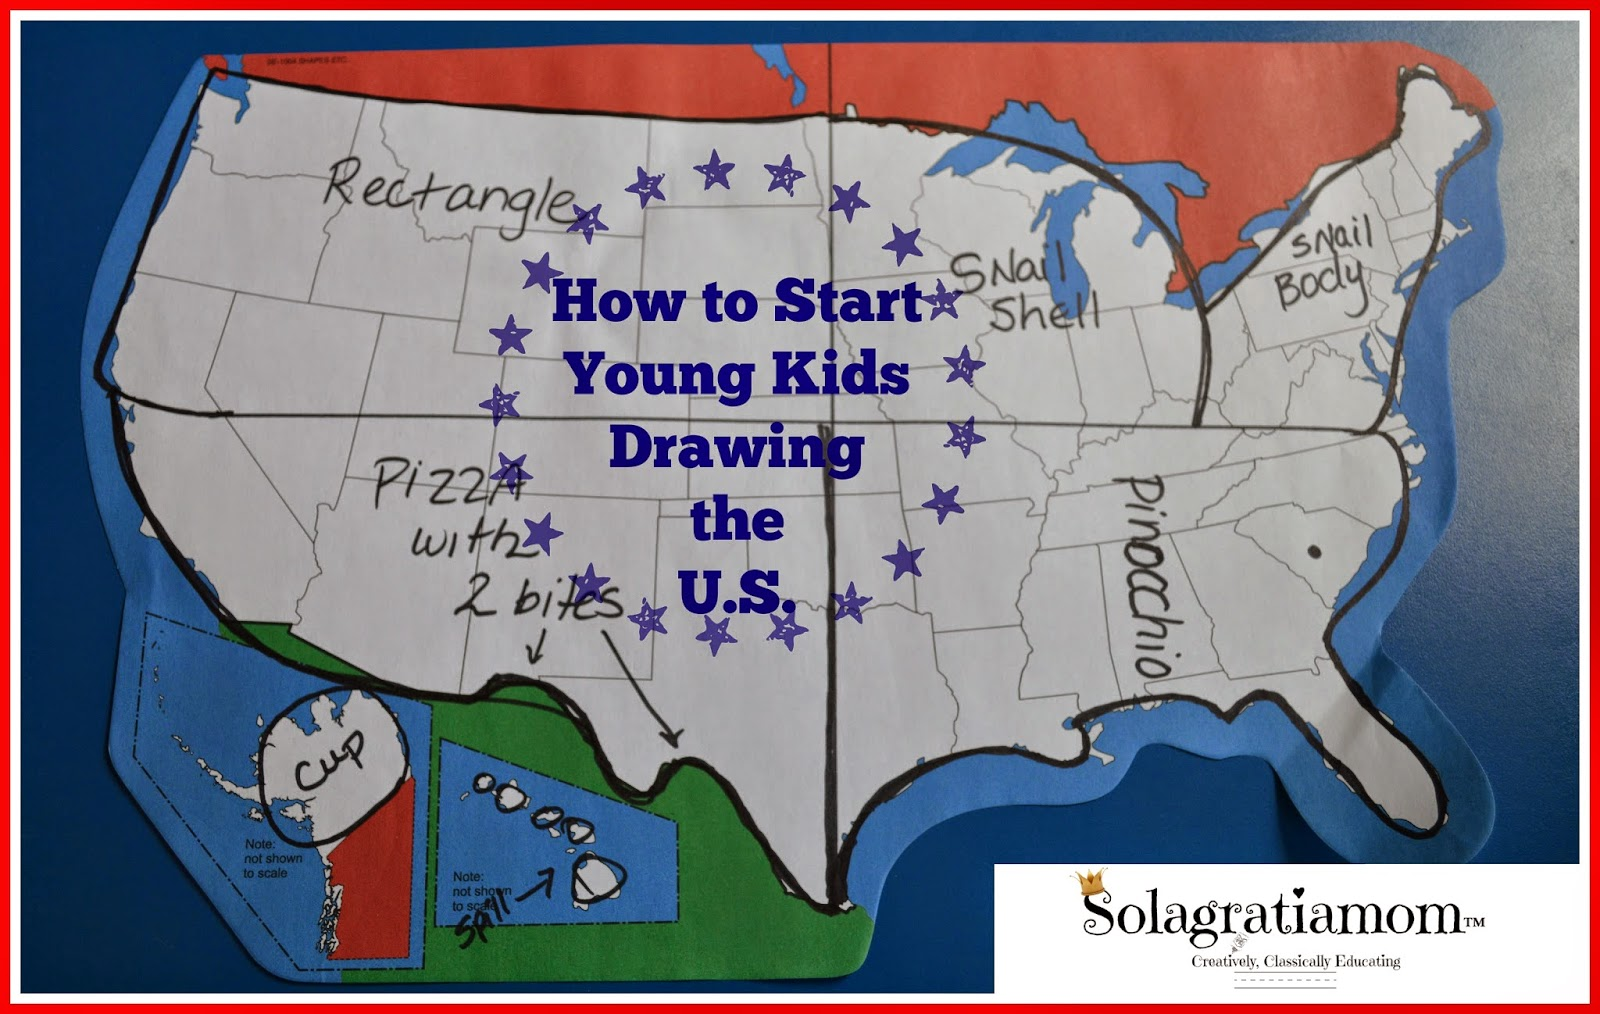 Charming How To Start Young Kids Drawing The U.S.